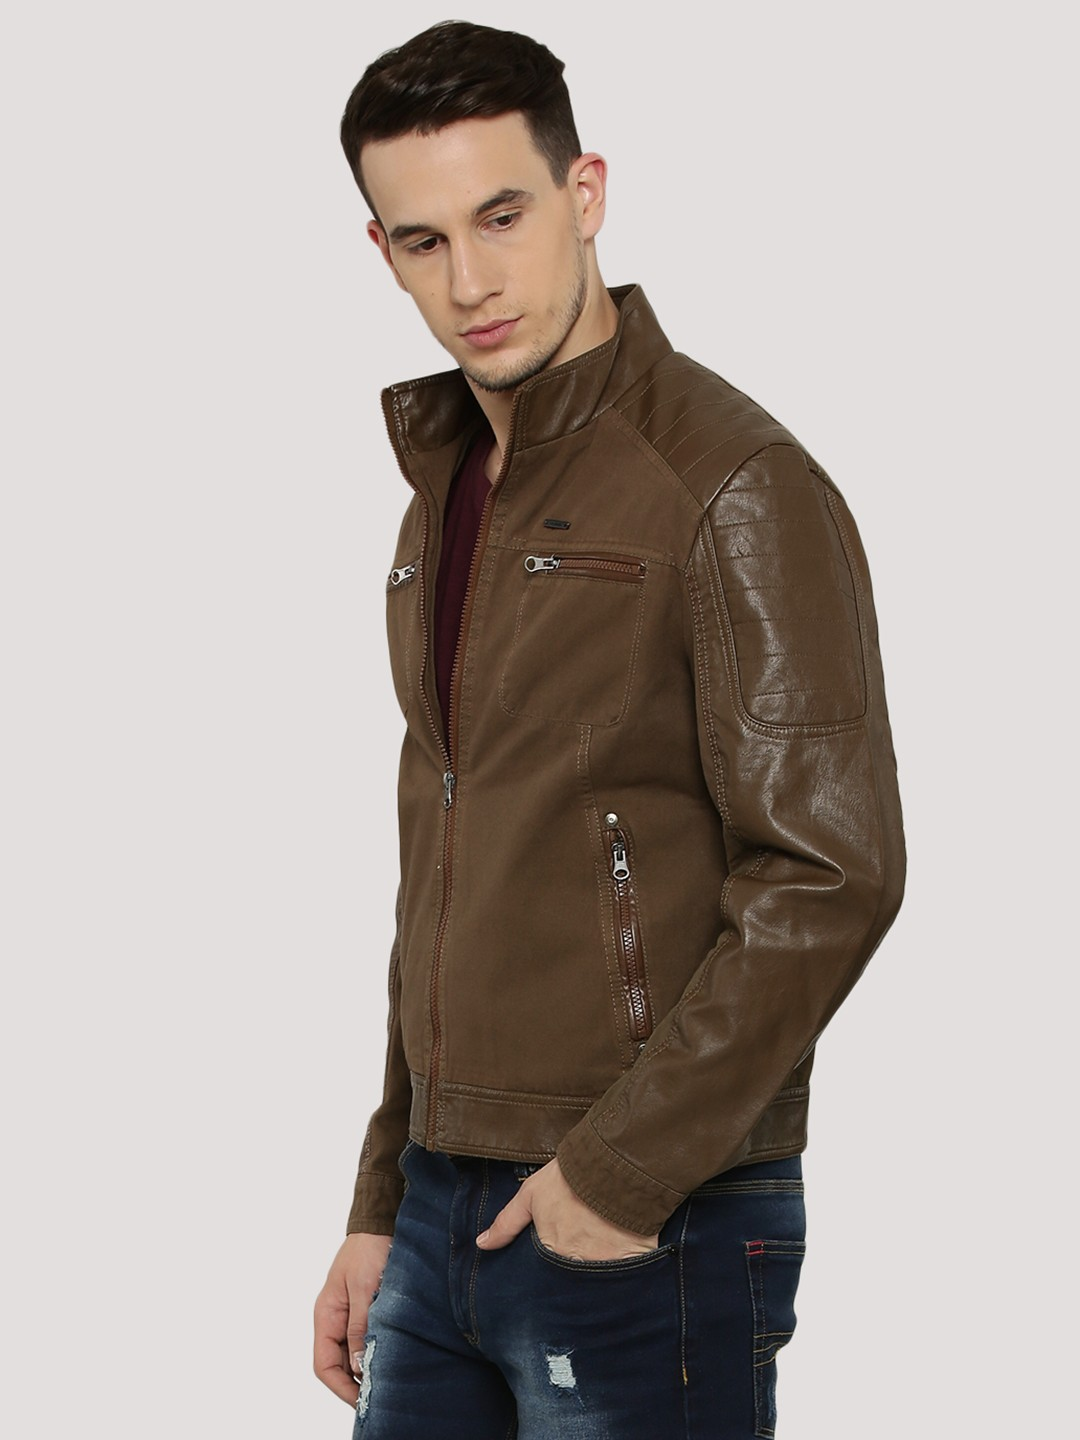 machine leather jacket